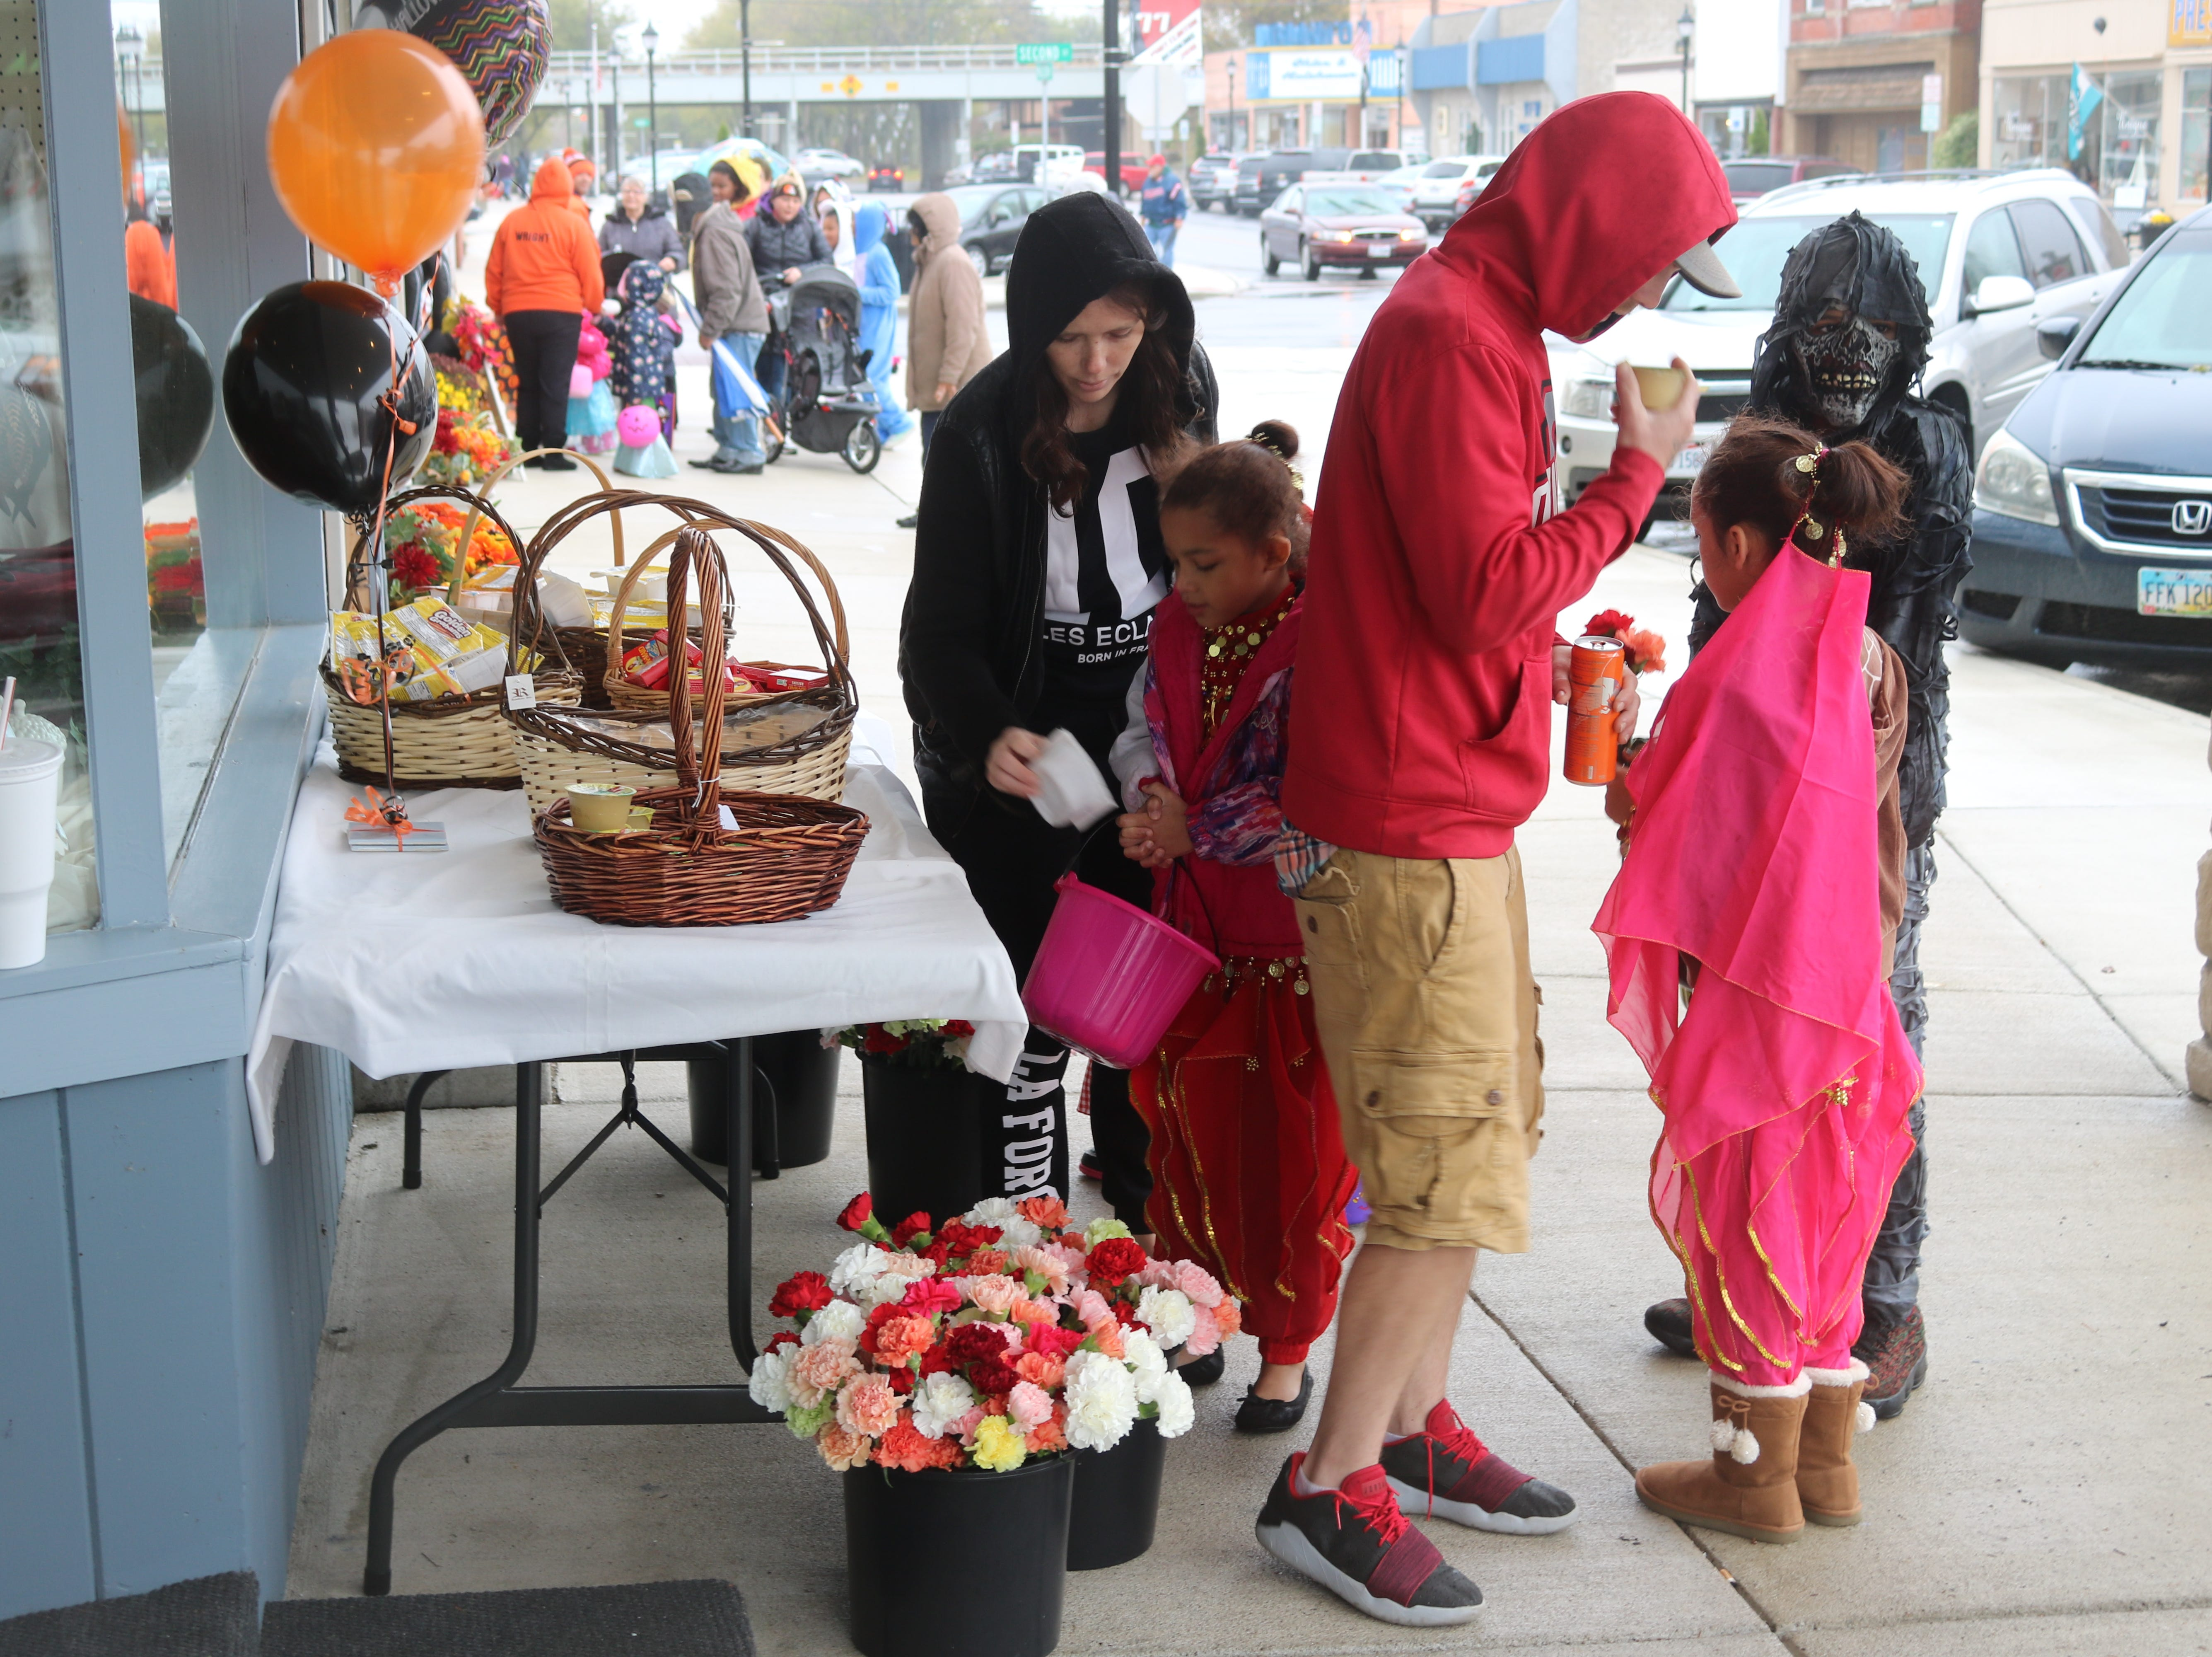 Despite the wet and chilly weather, children and families lined Second and Madison streets as Port Clinton hosted its seventh annual Downtown Trick-or-Treat.